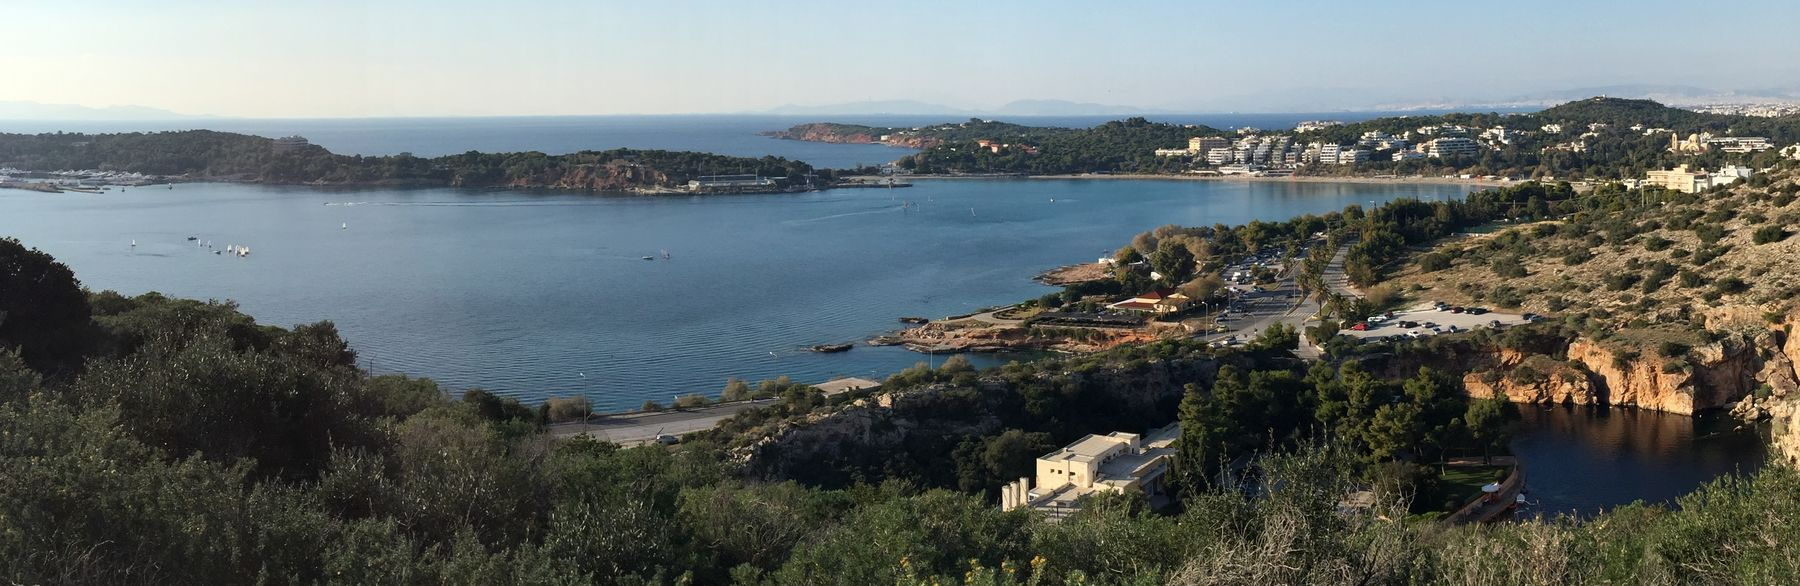 ESE view at Faskomilia, looking the lake, the beach and the peninsula of Vouliagmeni.